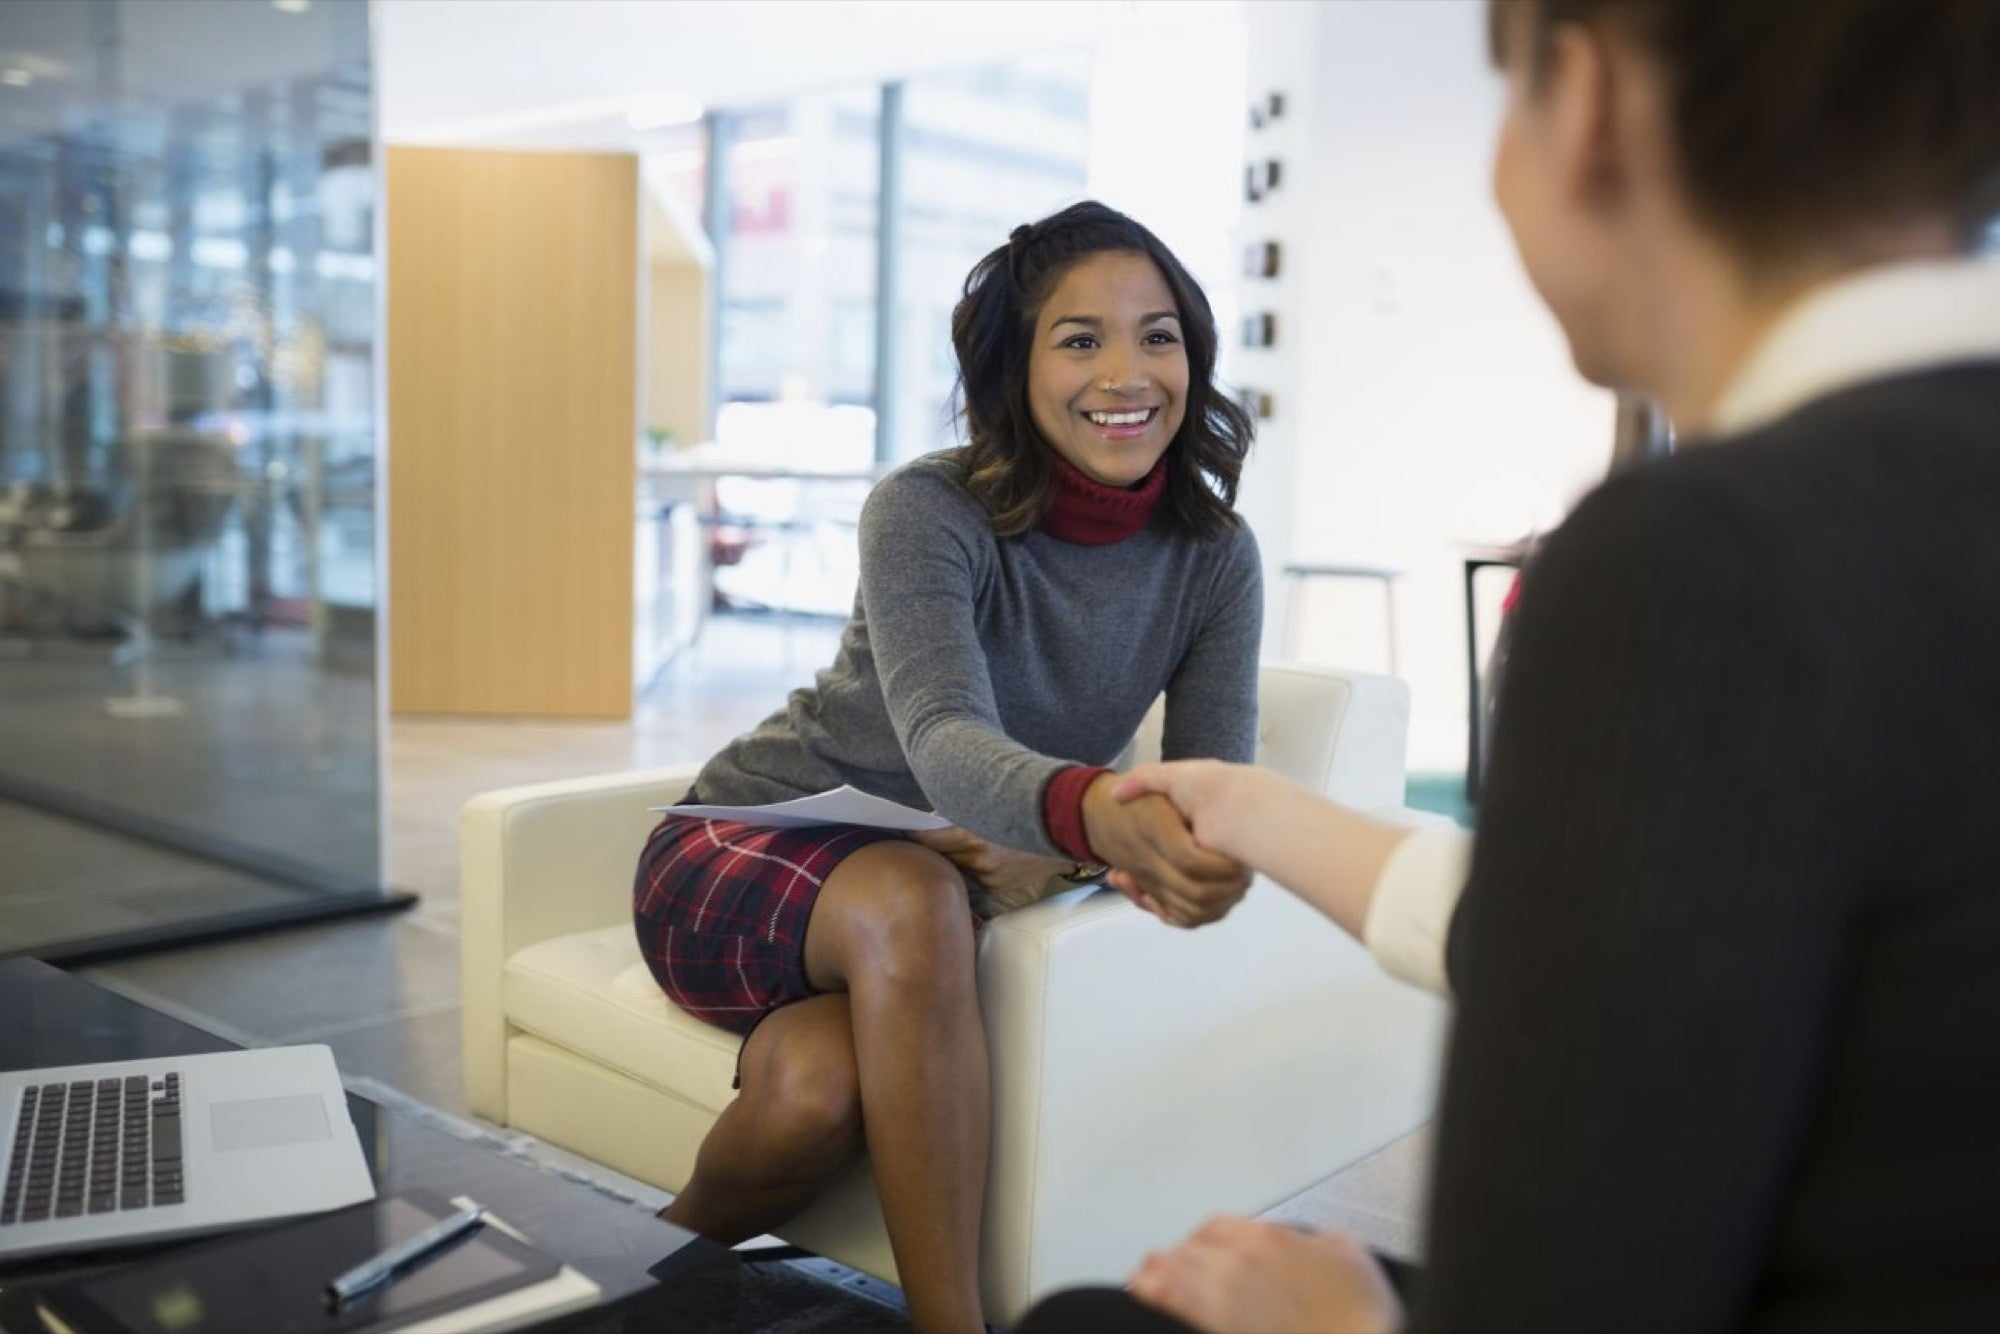 Zoom interview tips for job seekers